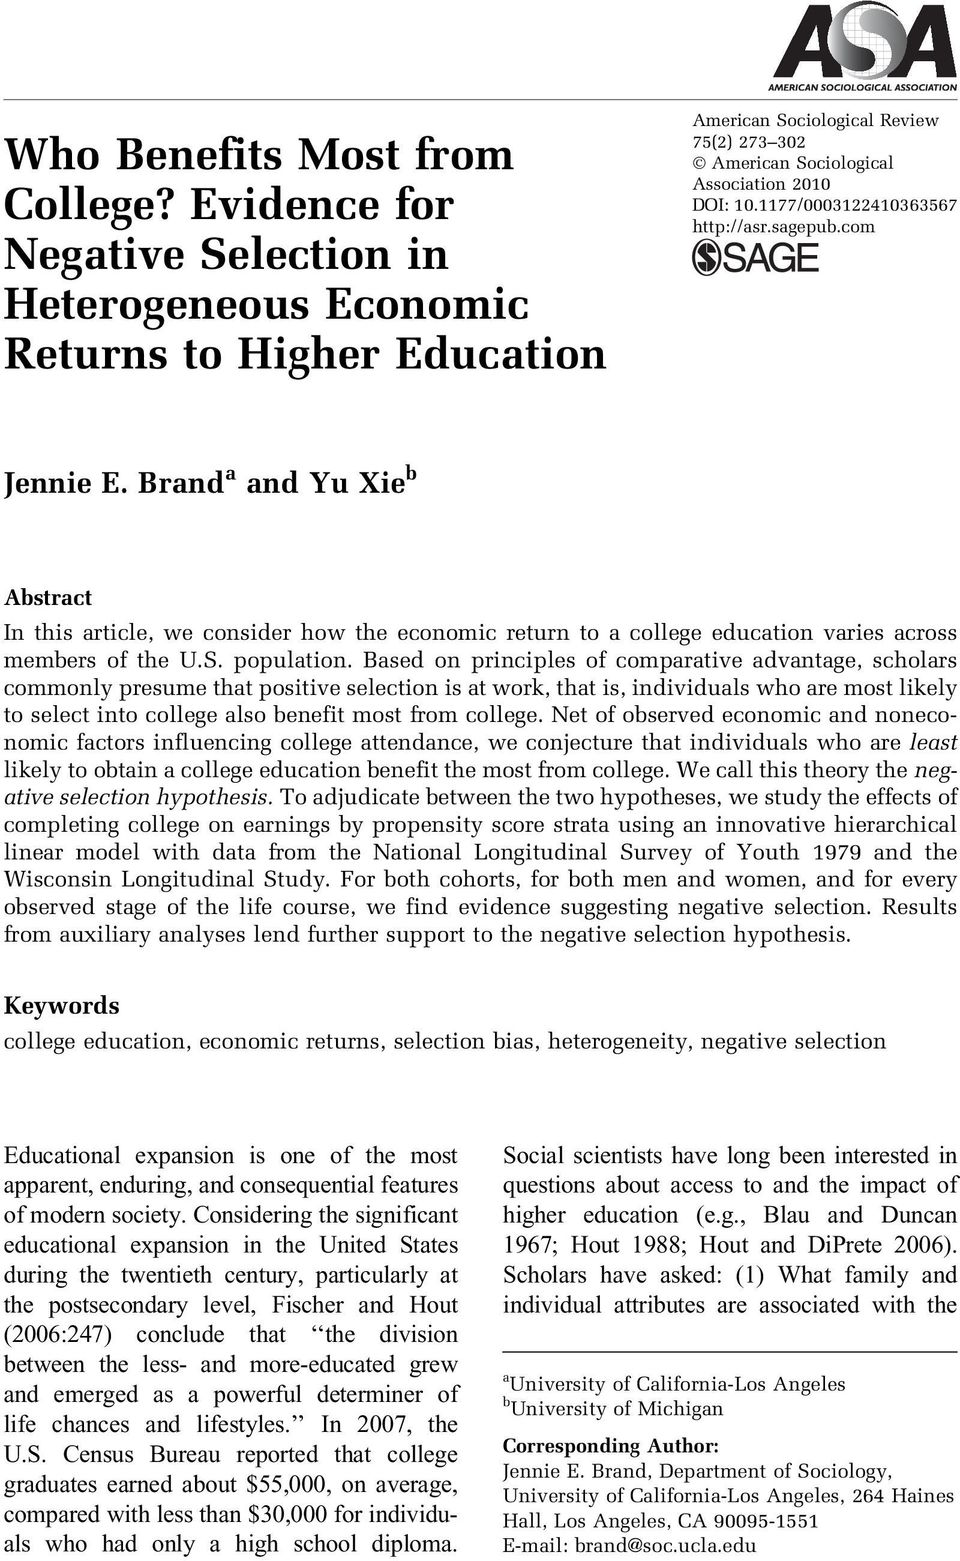 1177/0003122410363567 http://asr.sagepub.com Jennie E. Brand a and Yu Xie b Abstract In this article, we consider how the economic return to a college education varies across members of the U.S.